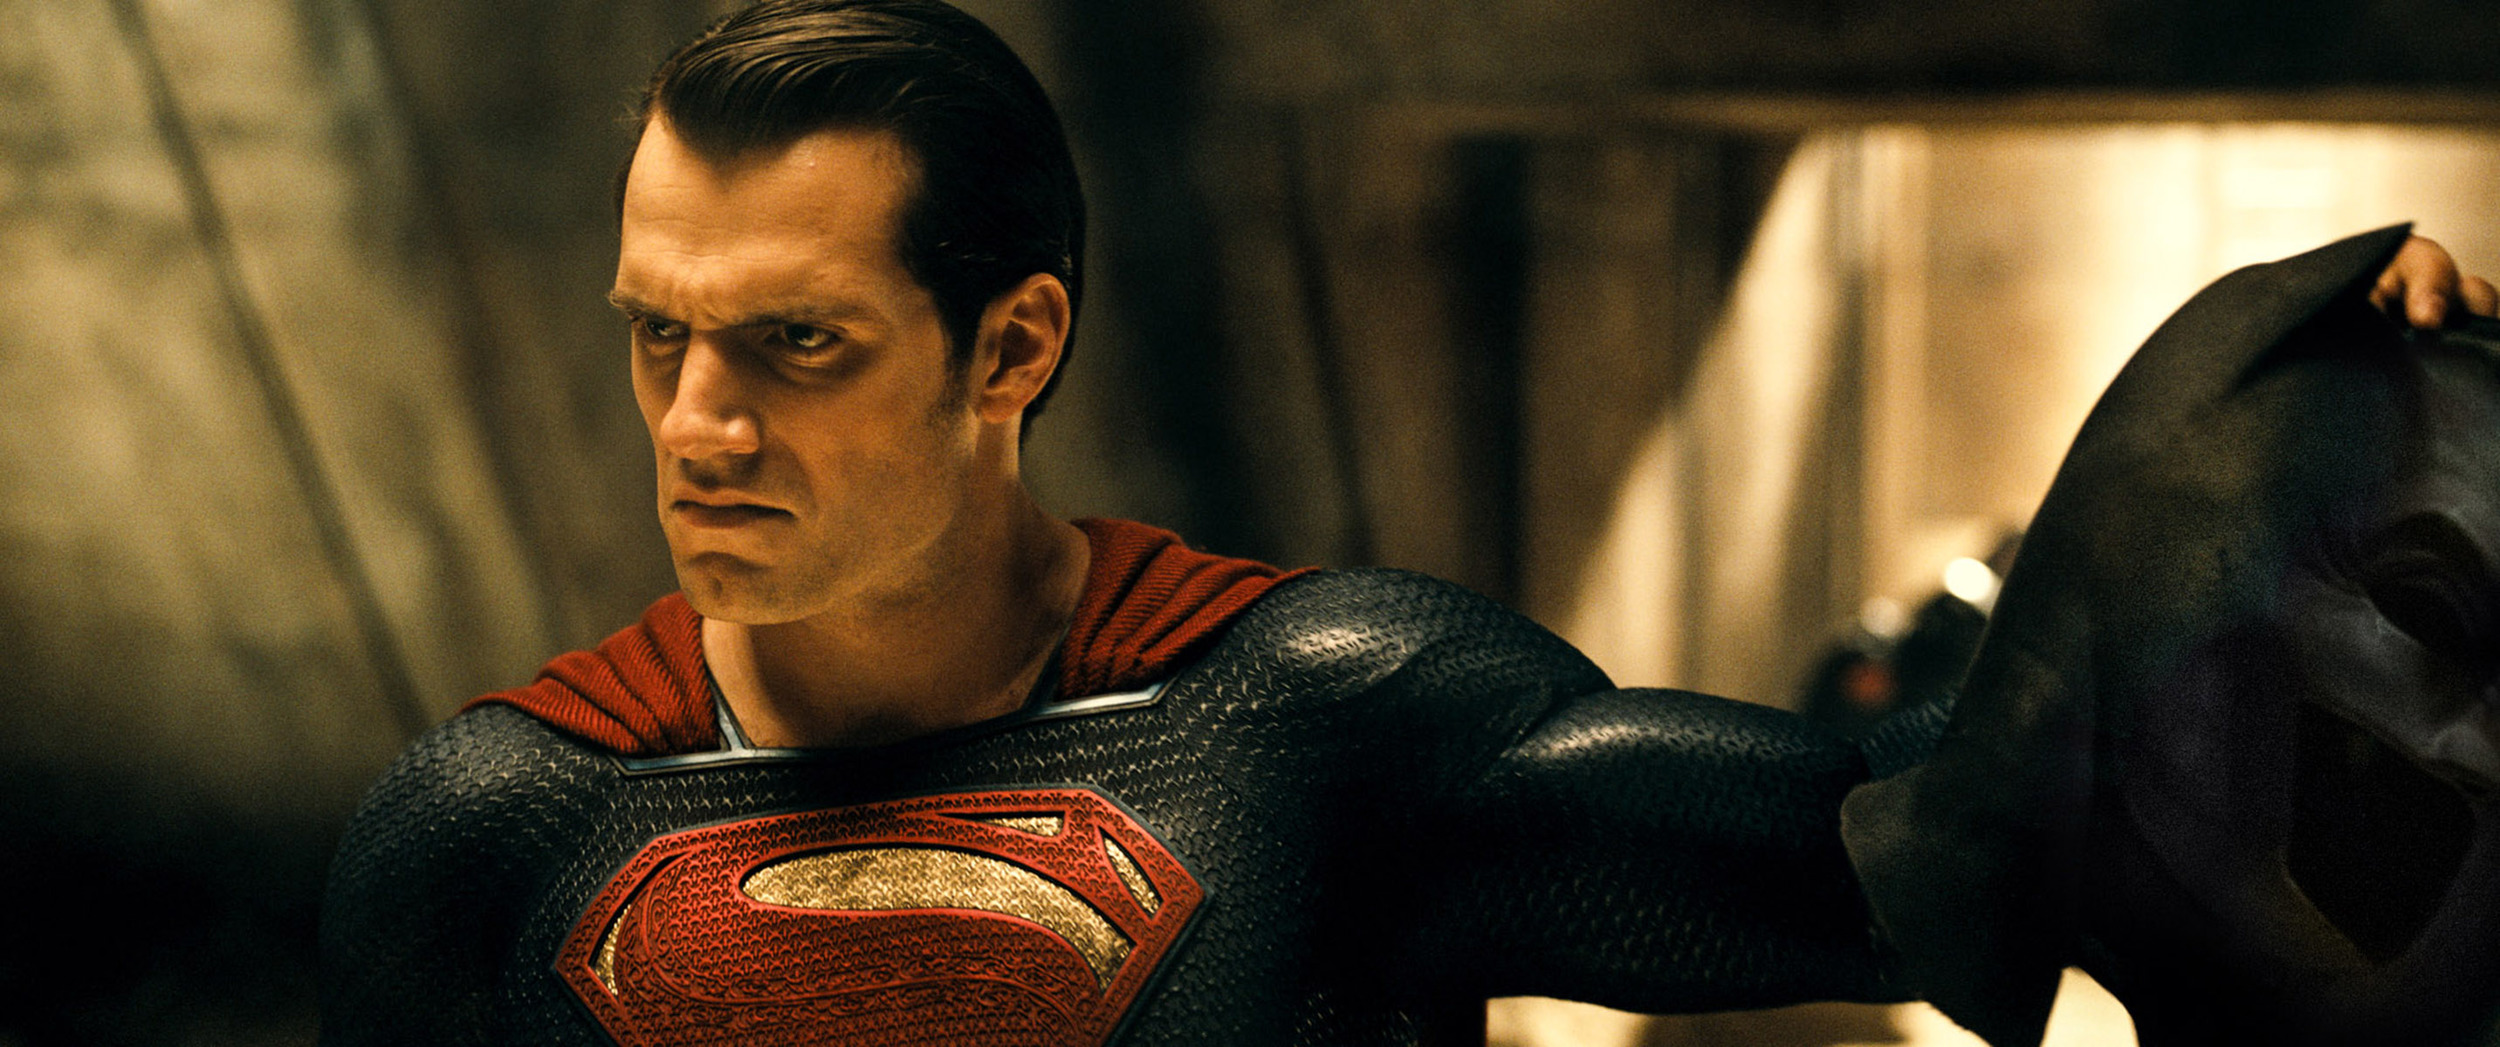 batman-v-superman-henry-cavill.jpg